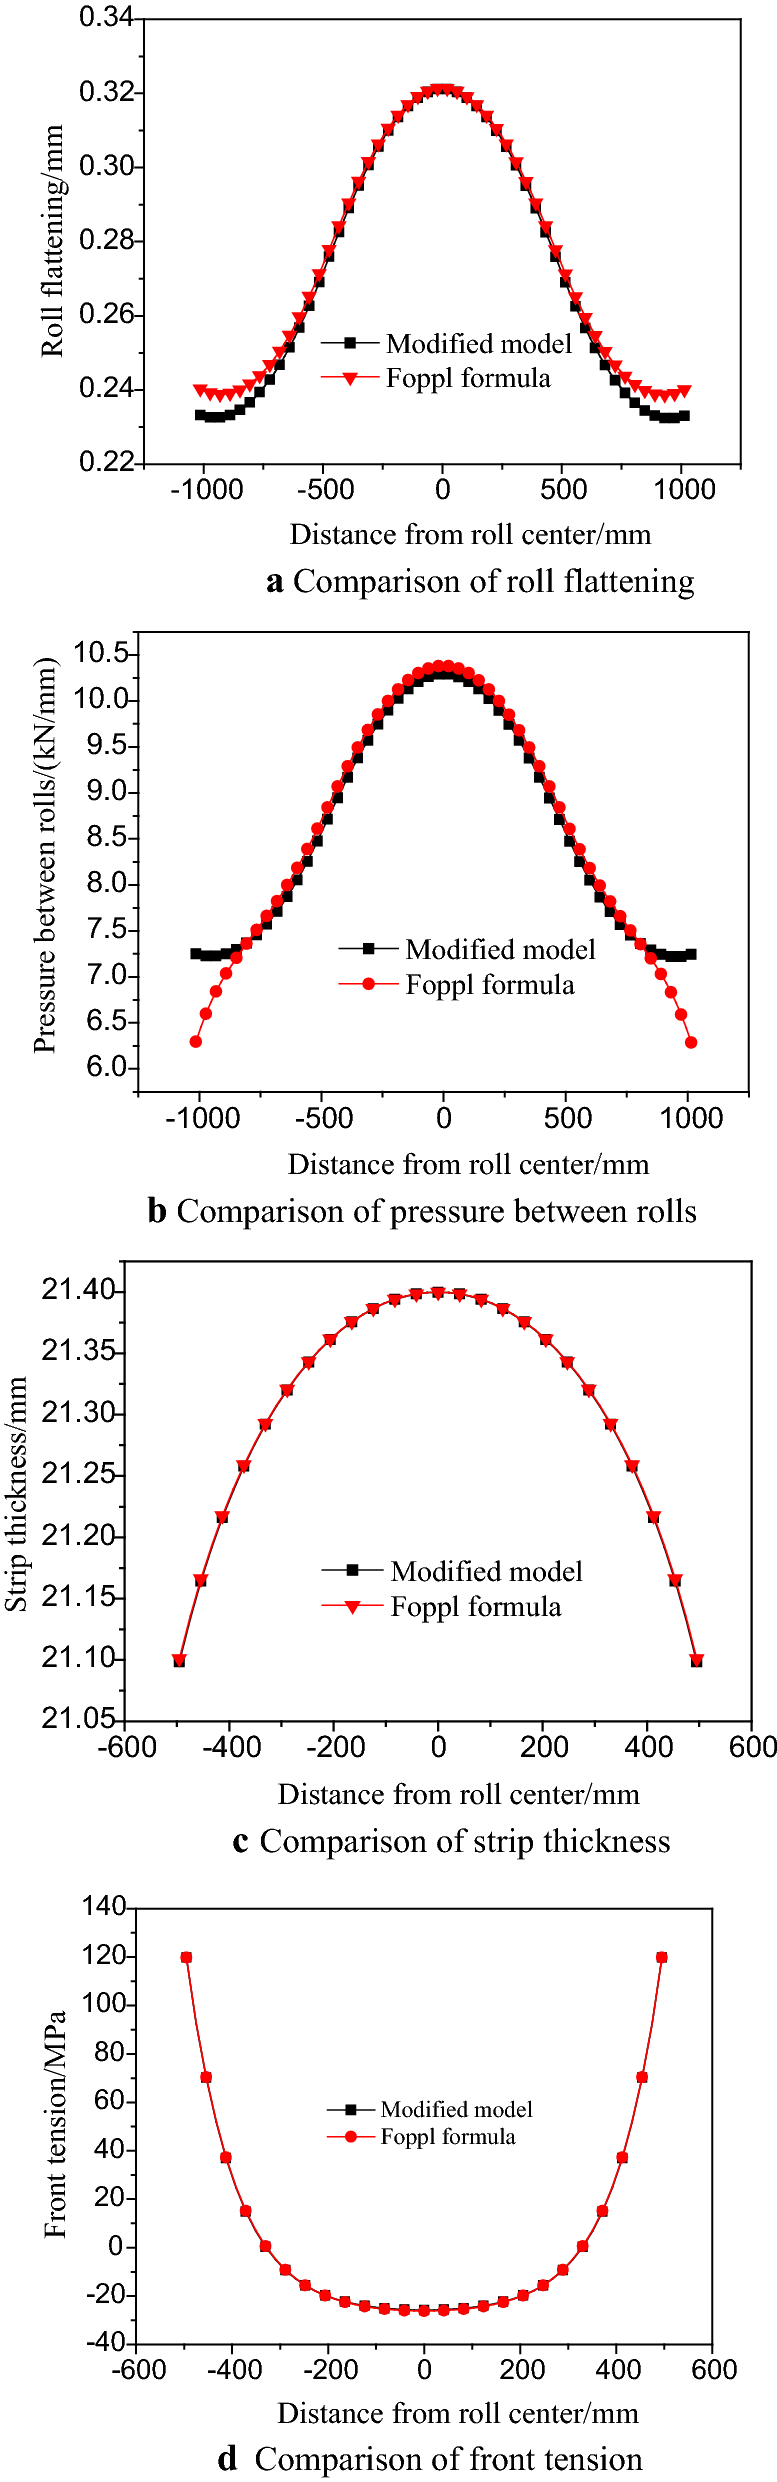 Modification of Roll Flattening Analytical Model Based on